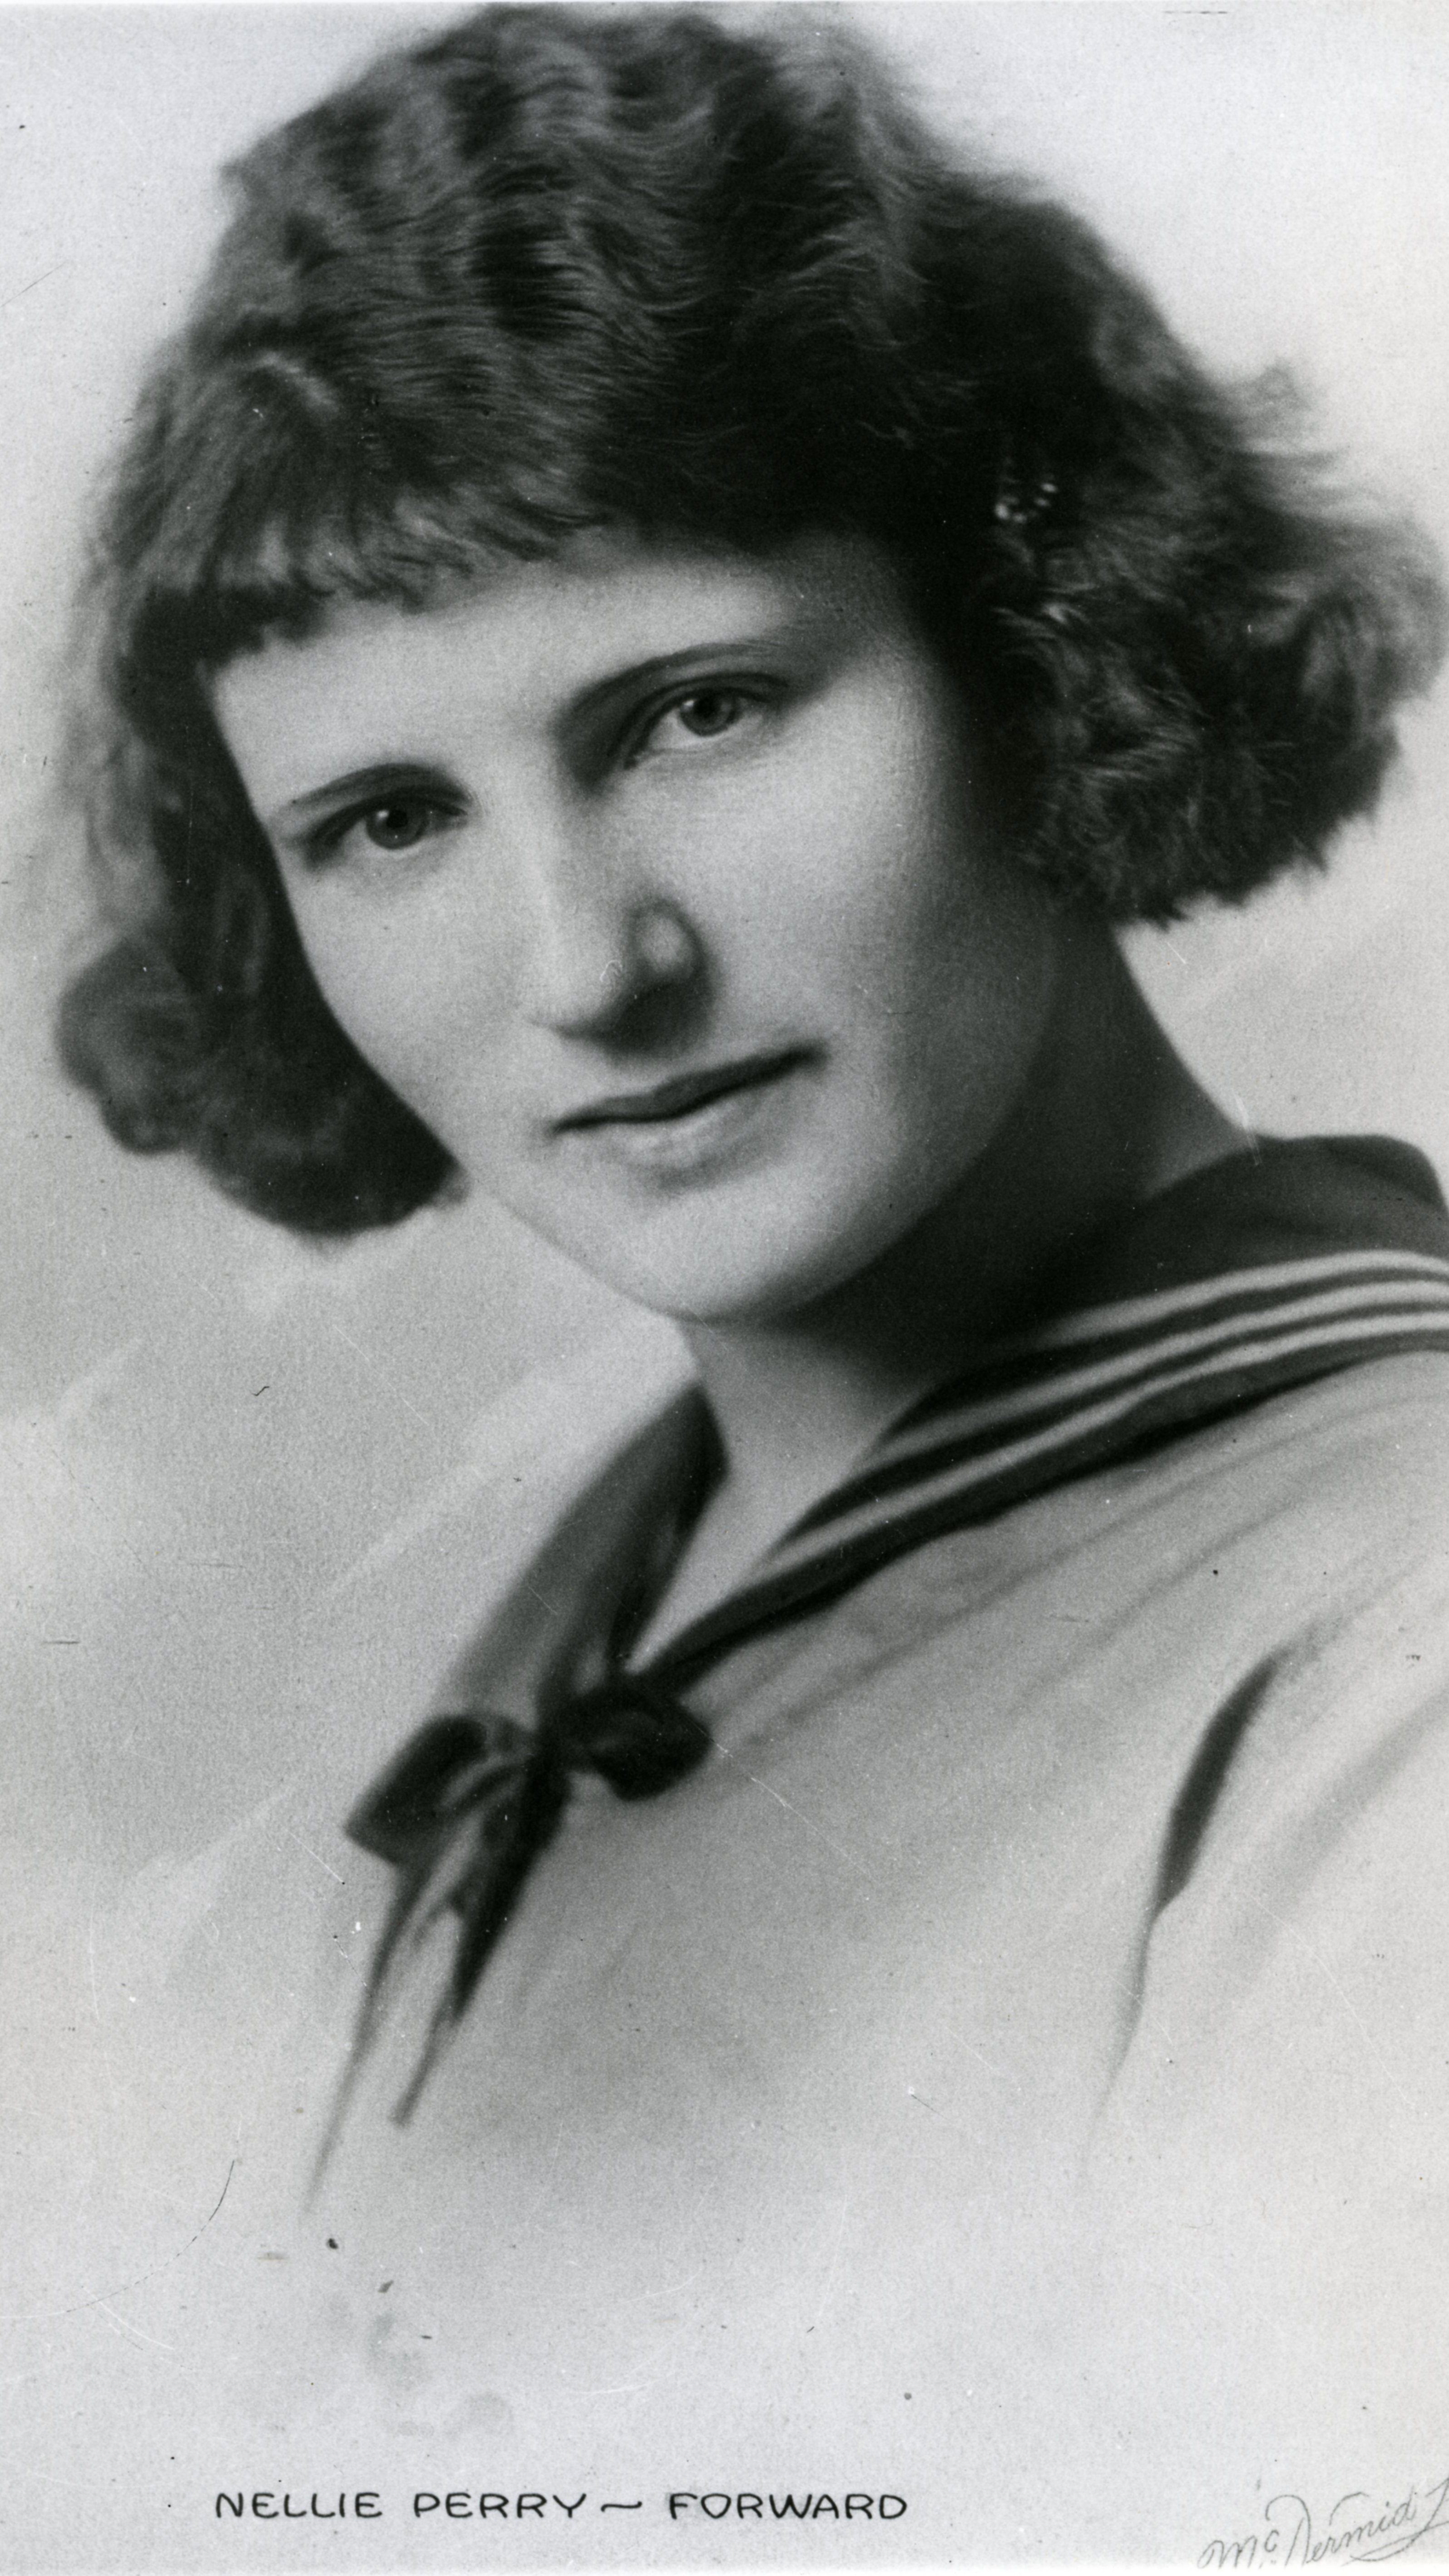 Hall of Famer NELLIE PERRY MCINTOSH